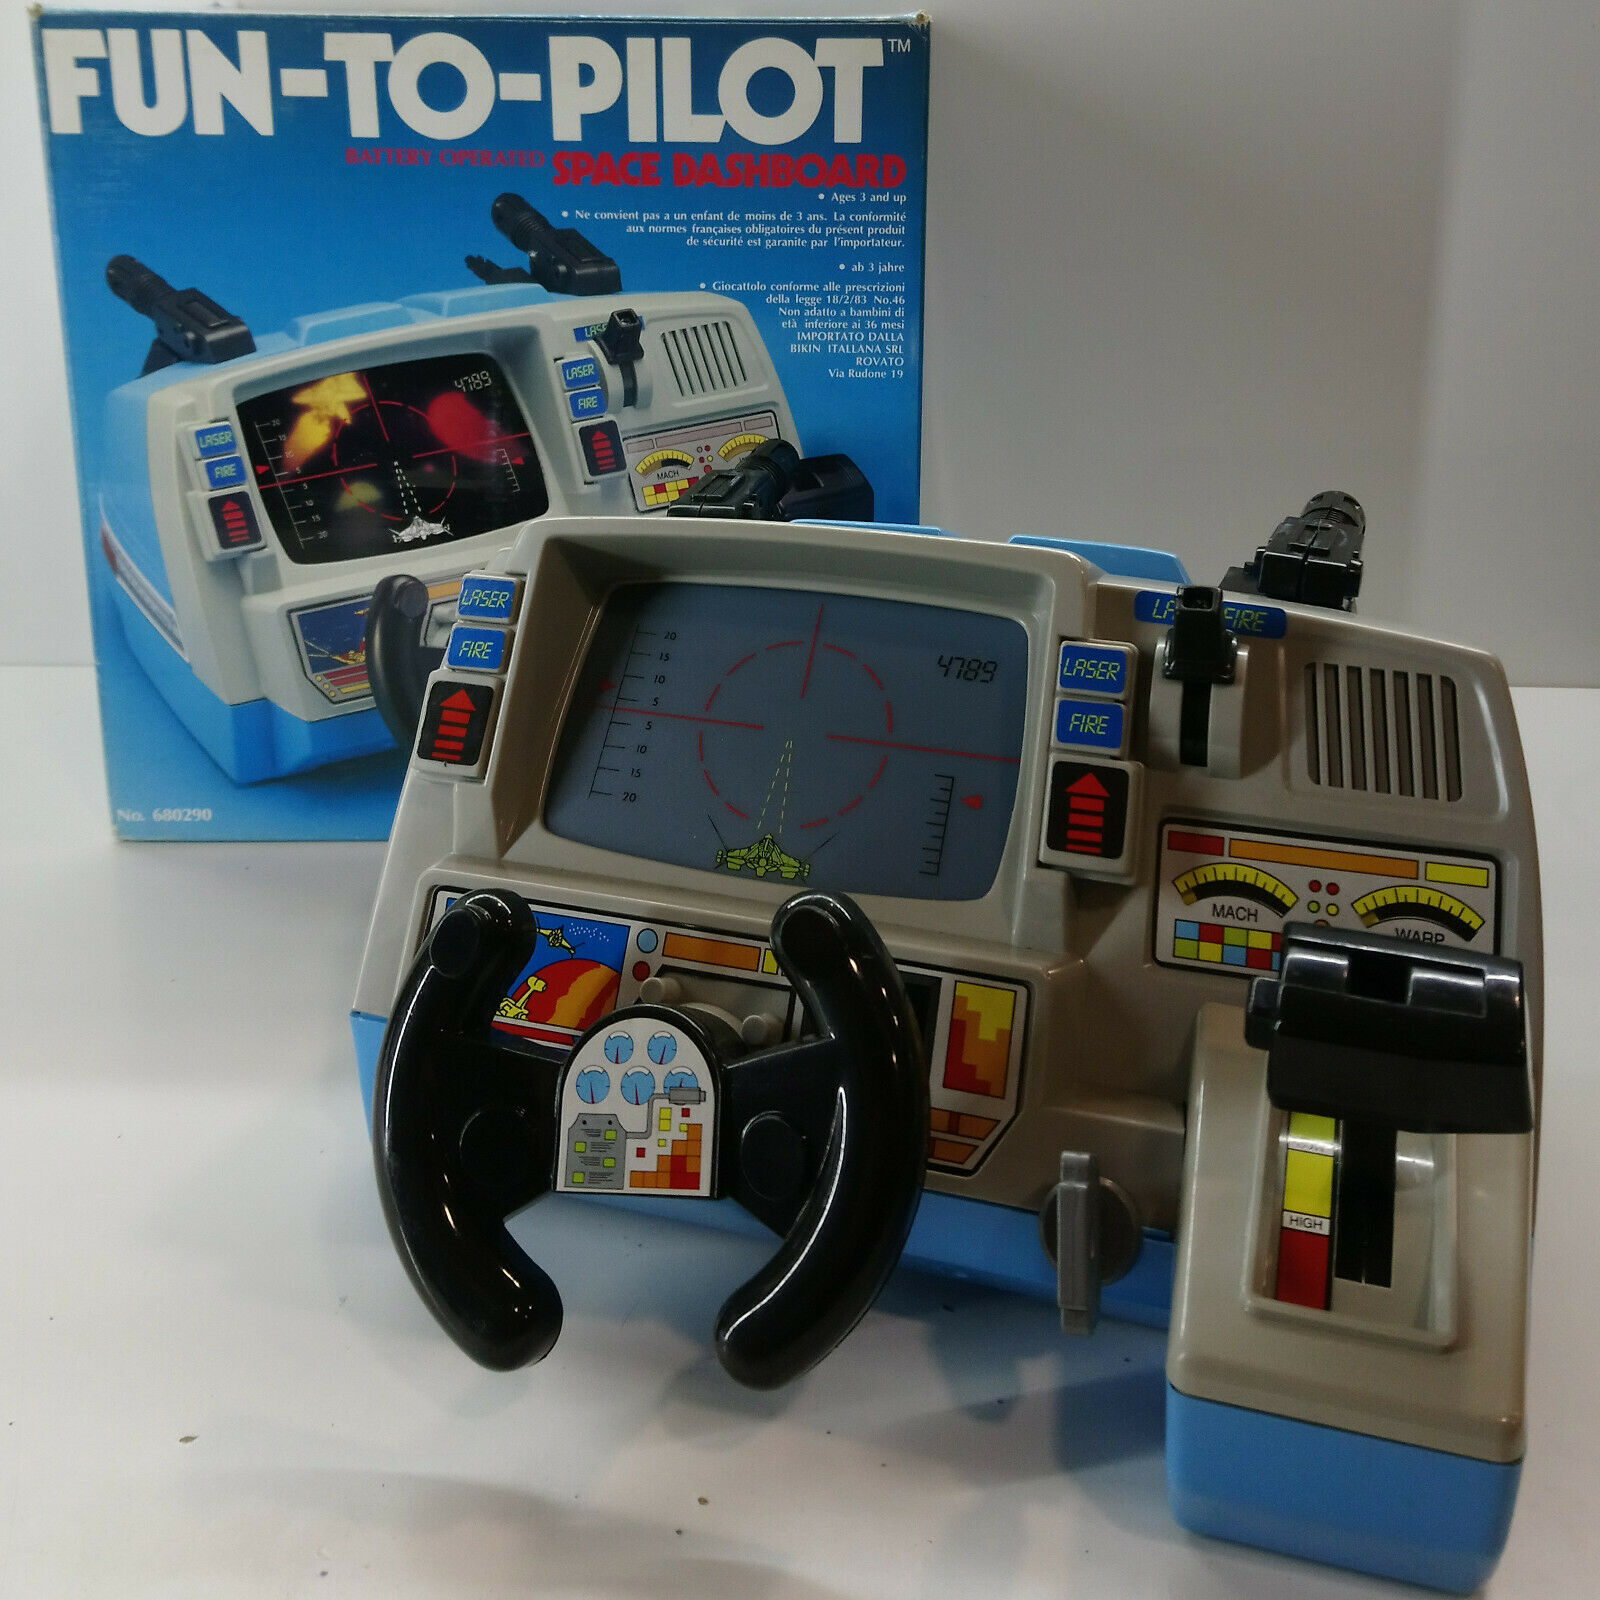 VTG 1989 PLAYMATES FUN-TO-PILOT SPACE DASHBOARD ELECTRONIC TESTED WORKING NEW